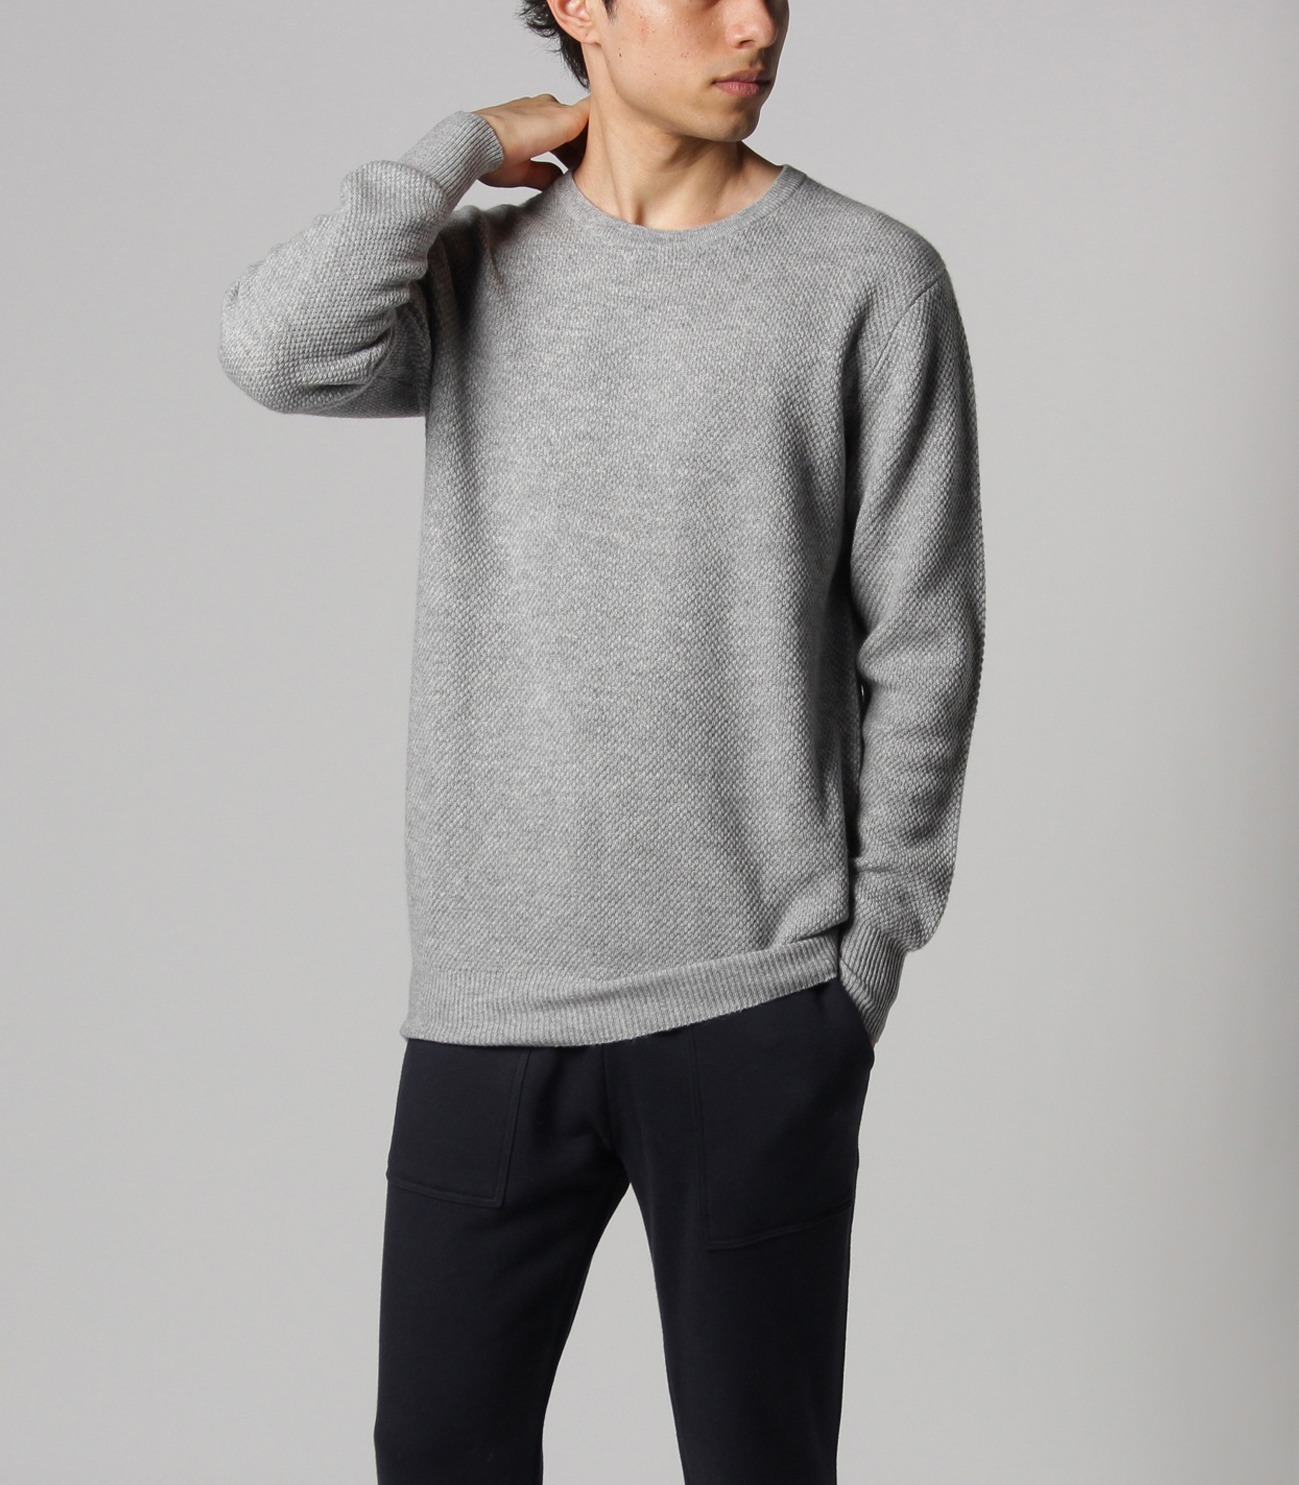 Men's pure cashmere waffle crew 詳細画像 navy 5